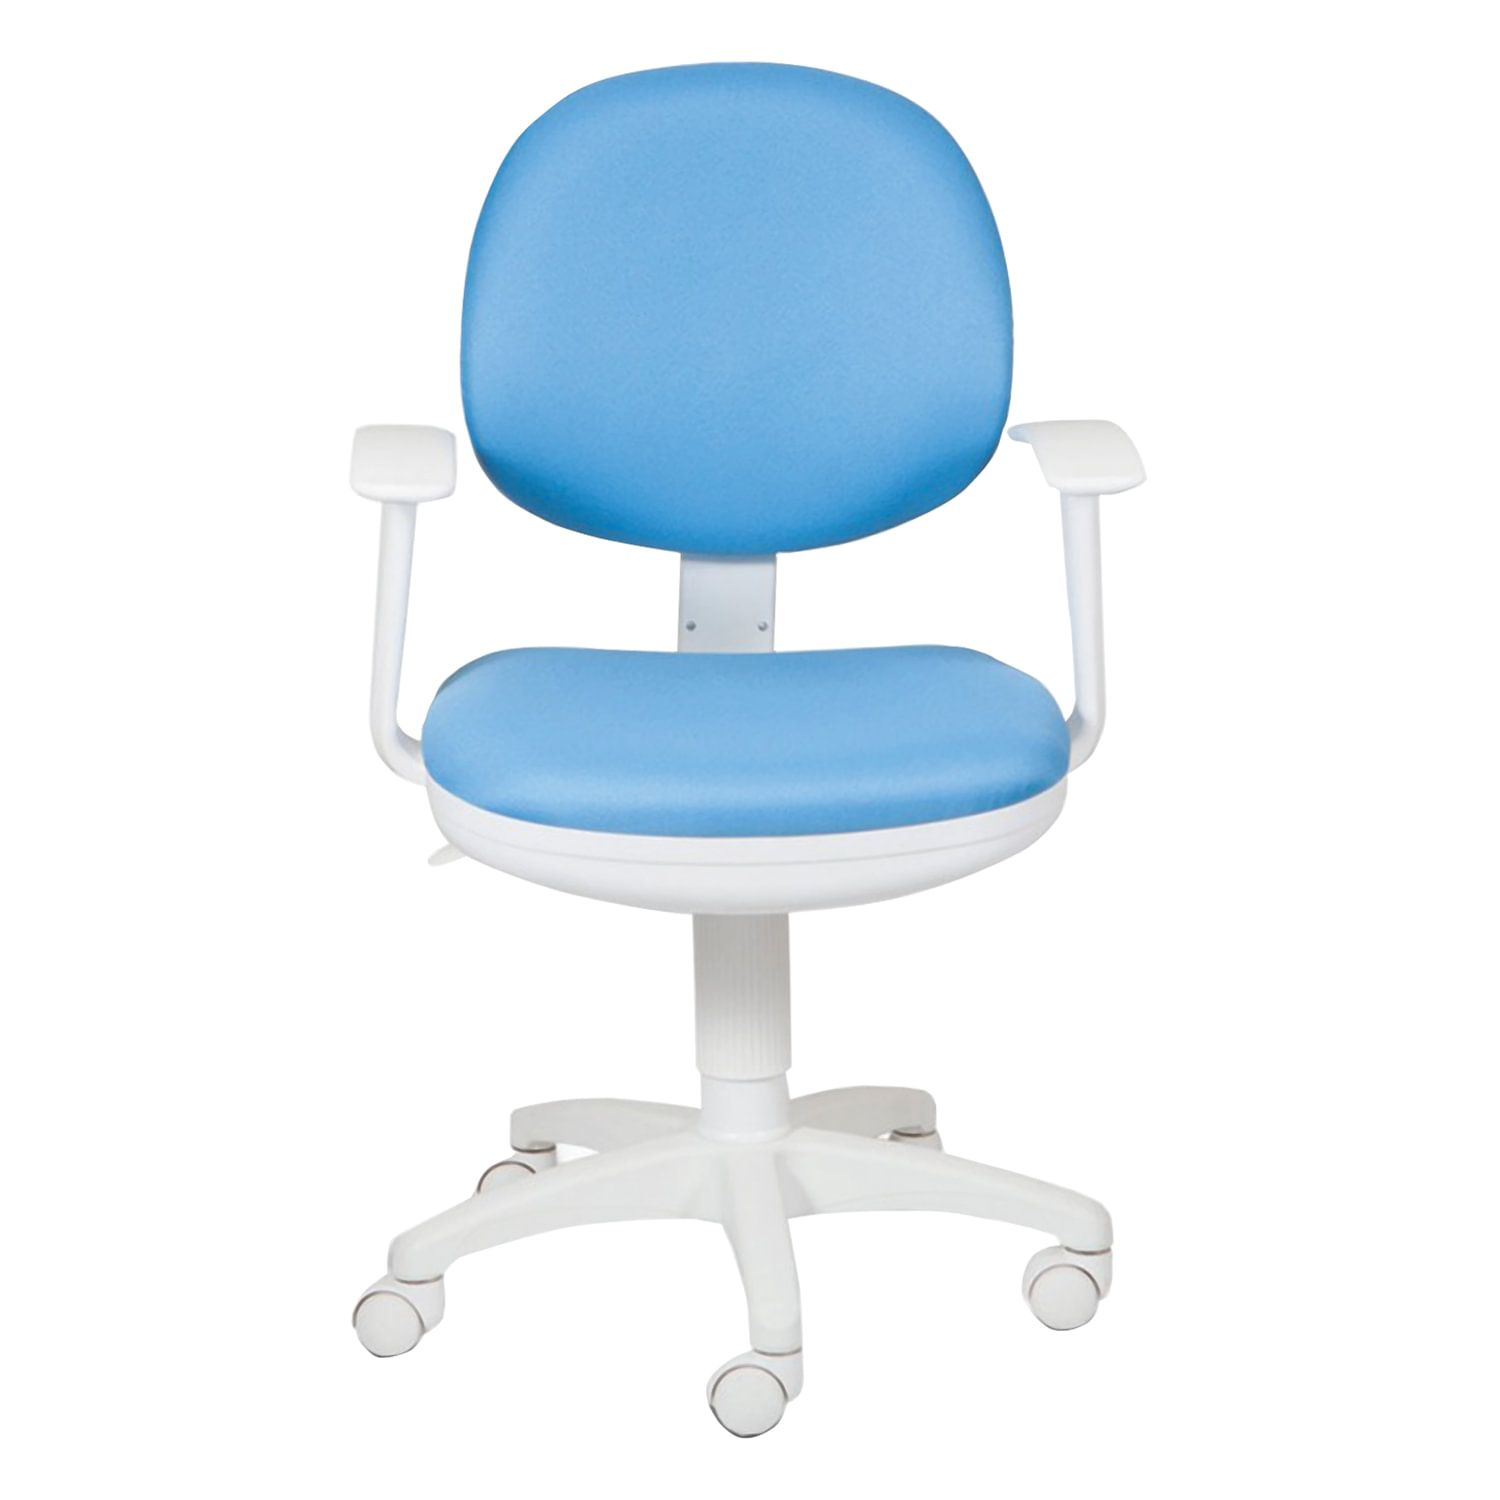 Chair CH-W356AXSN with armrests, blue, plastic white